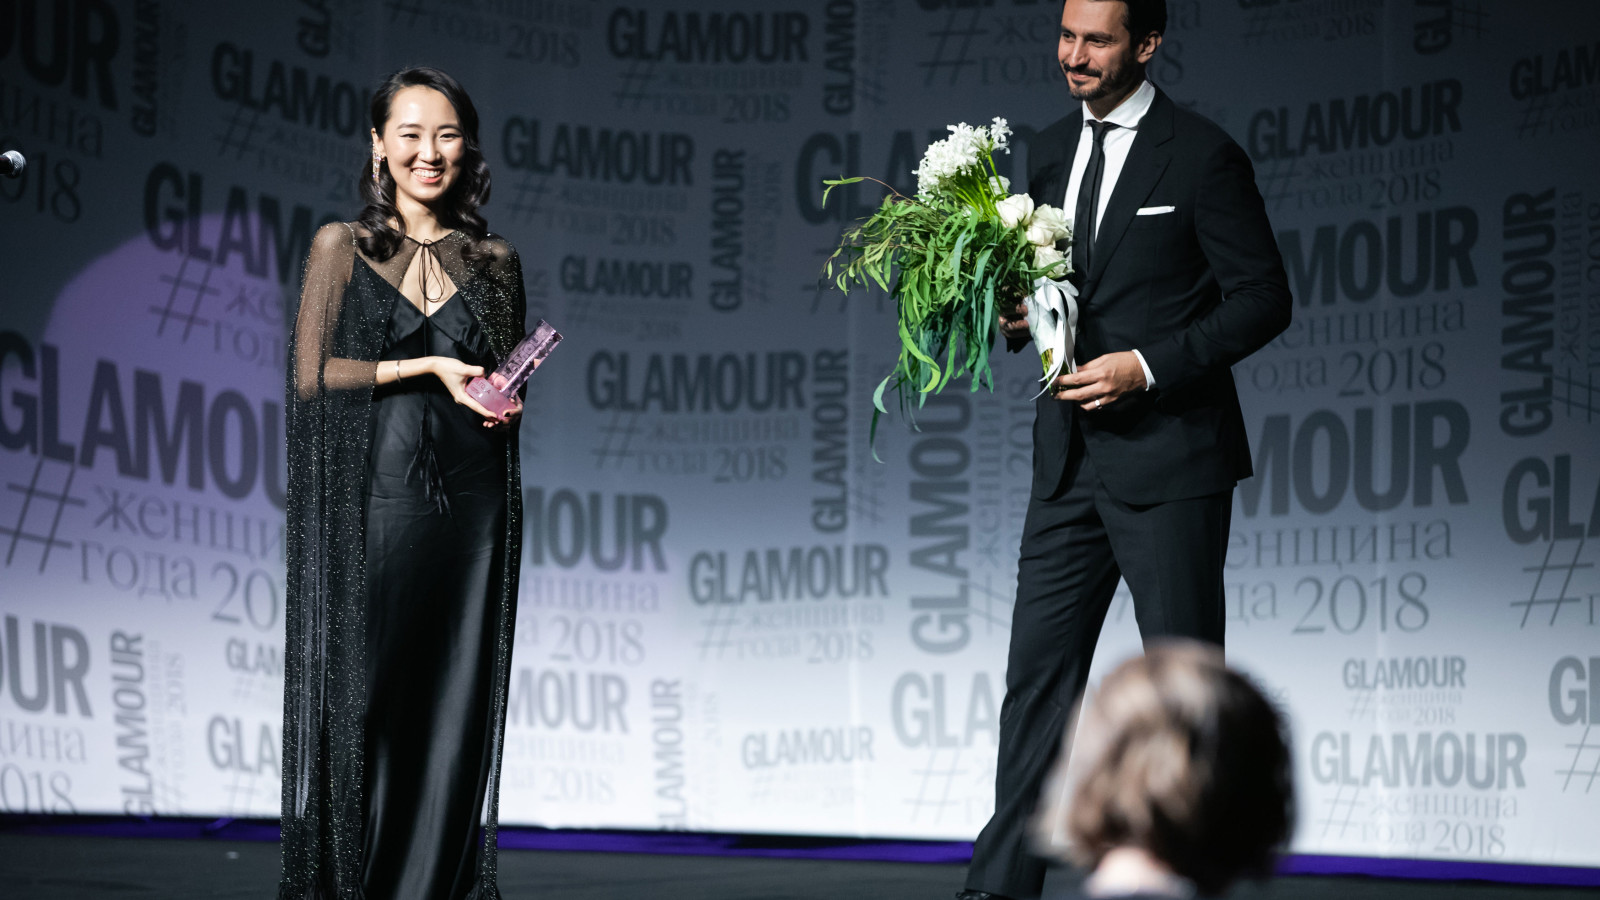 131118Glamour Ceremony 105---Maria-Pertseva-Khvaley---Russia---Glamour-WOTY-small